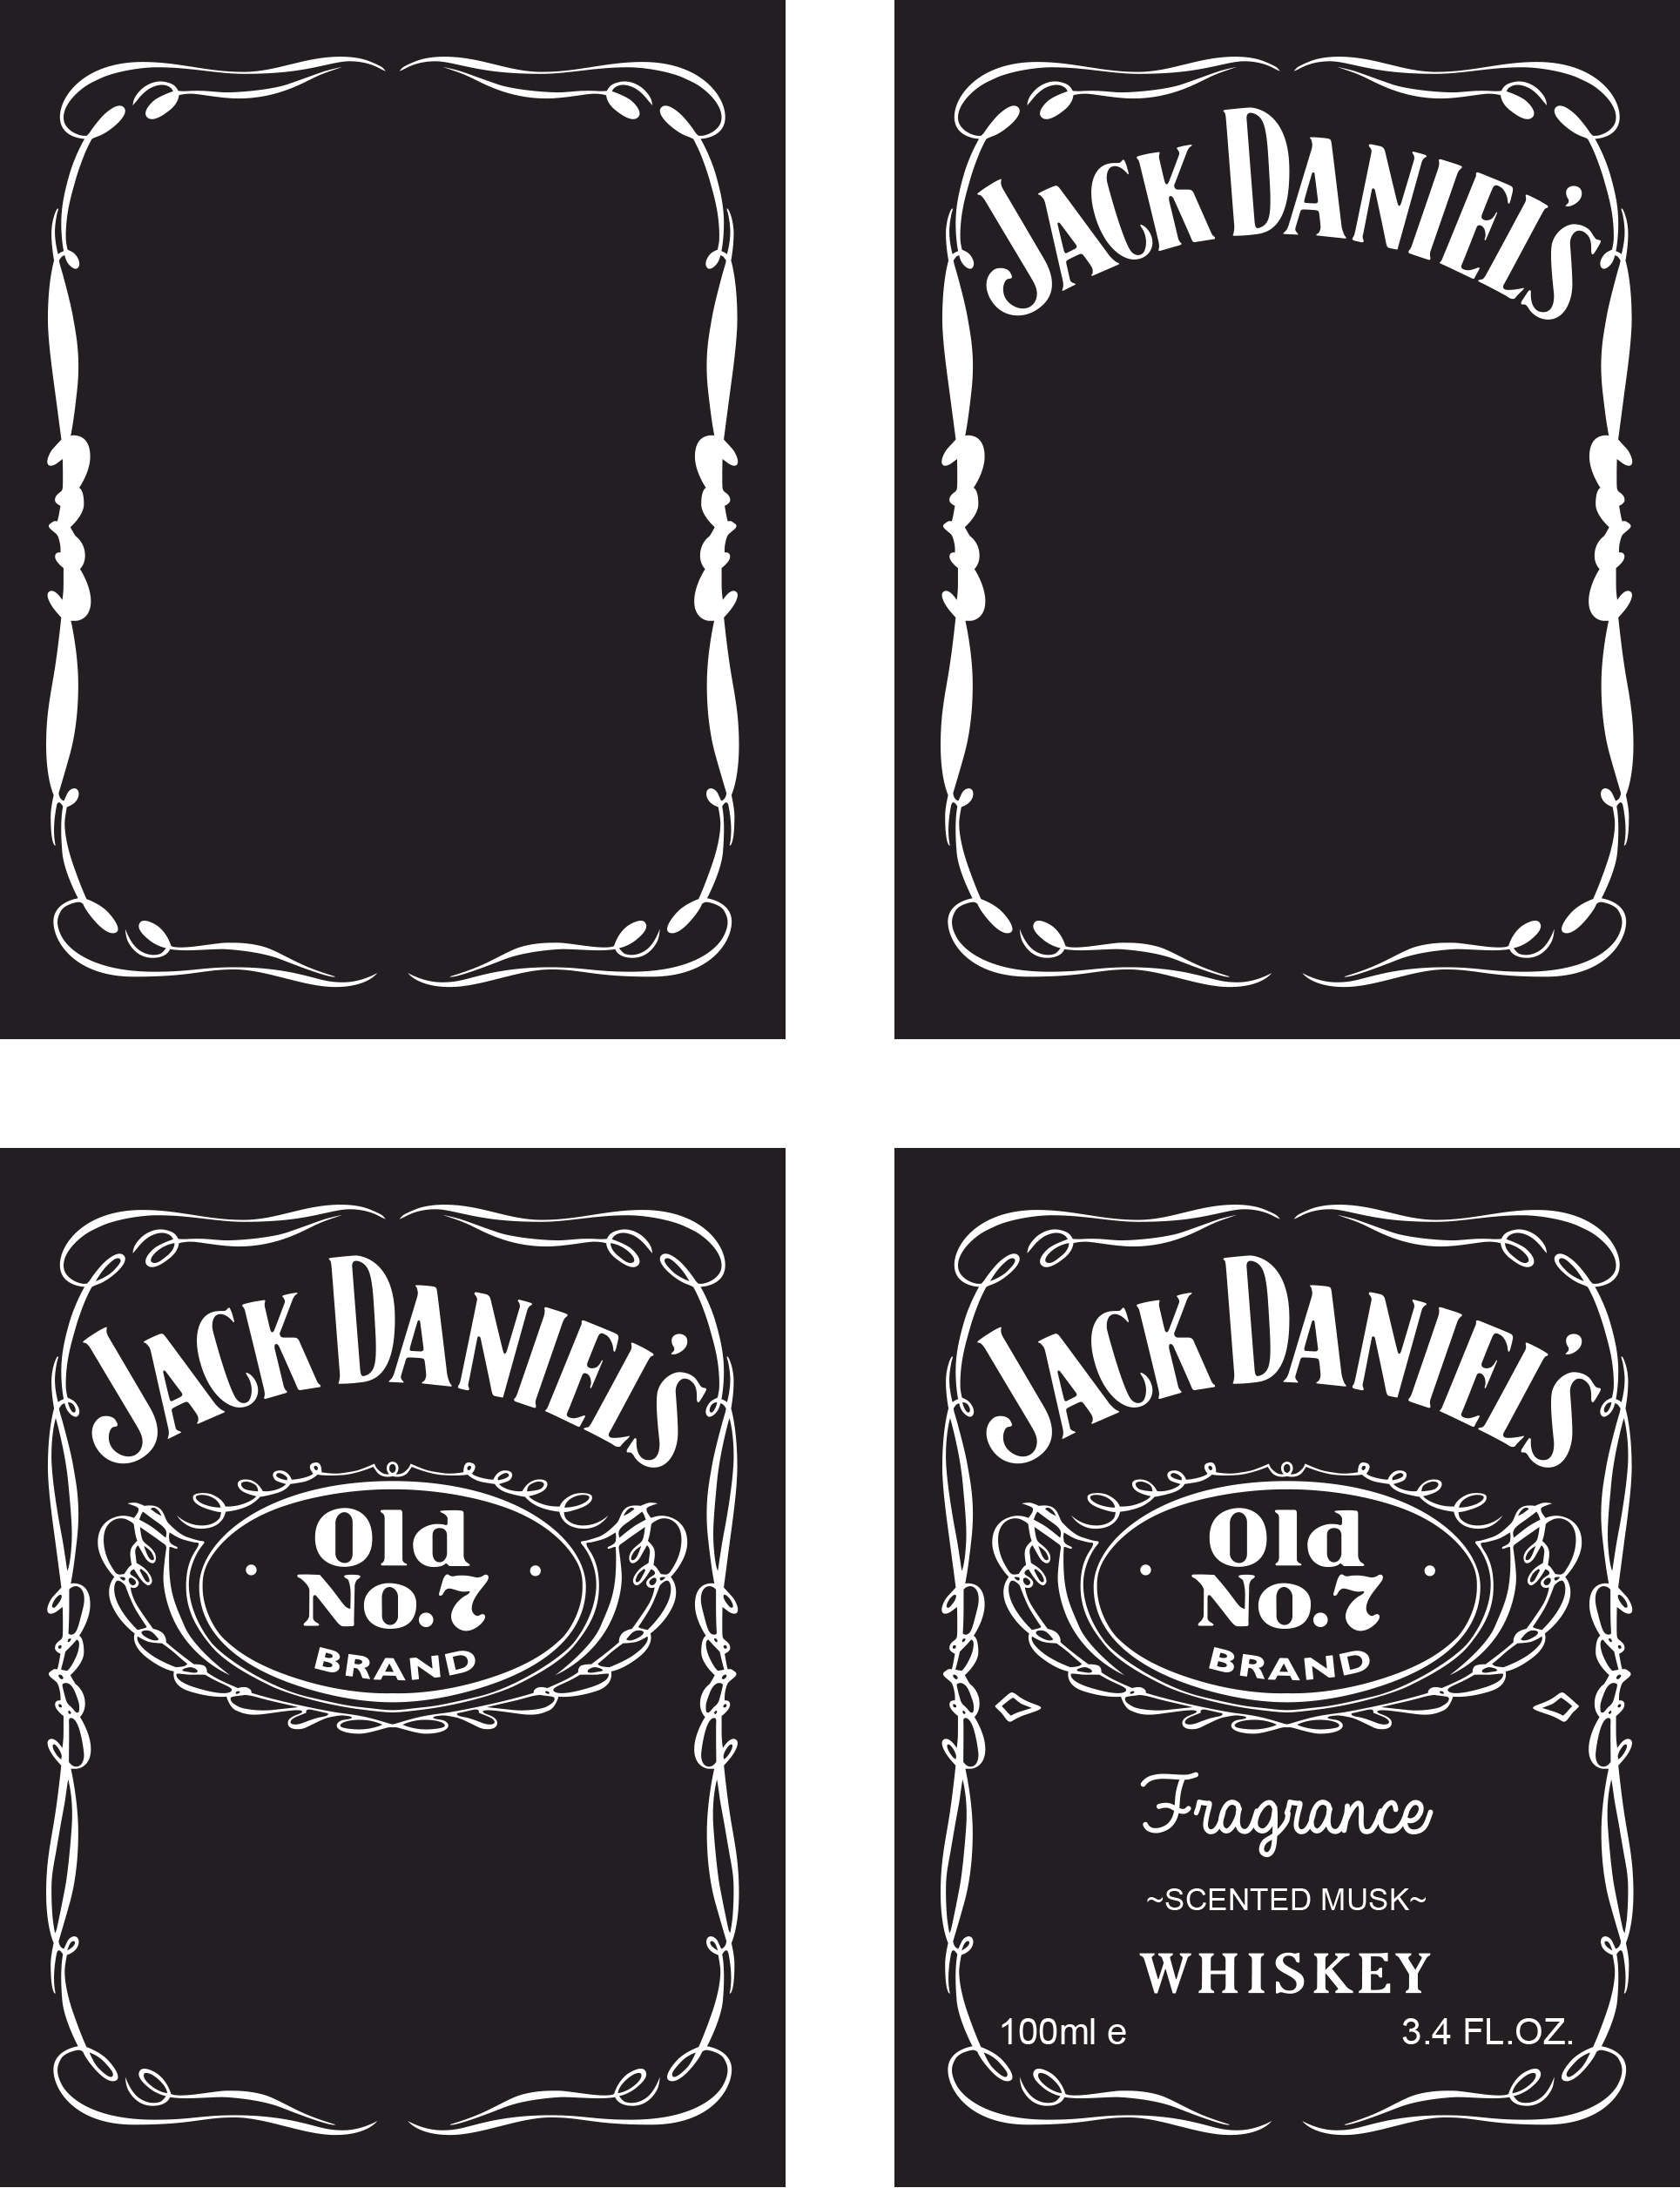 jack daniels label template generator printable label templates. Black Bedroom Furniture Sets. Home Design Ideas